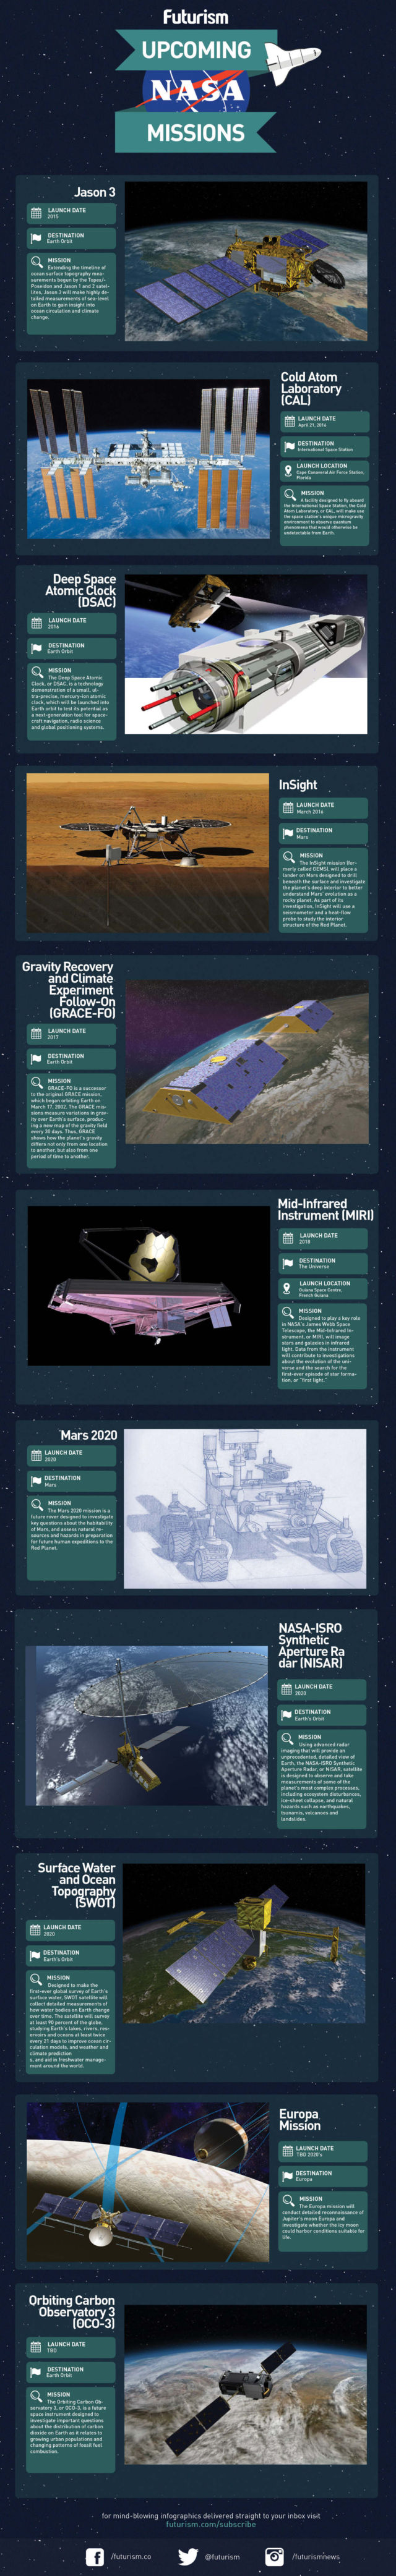 NASA's upcoming Space Missions